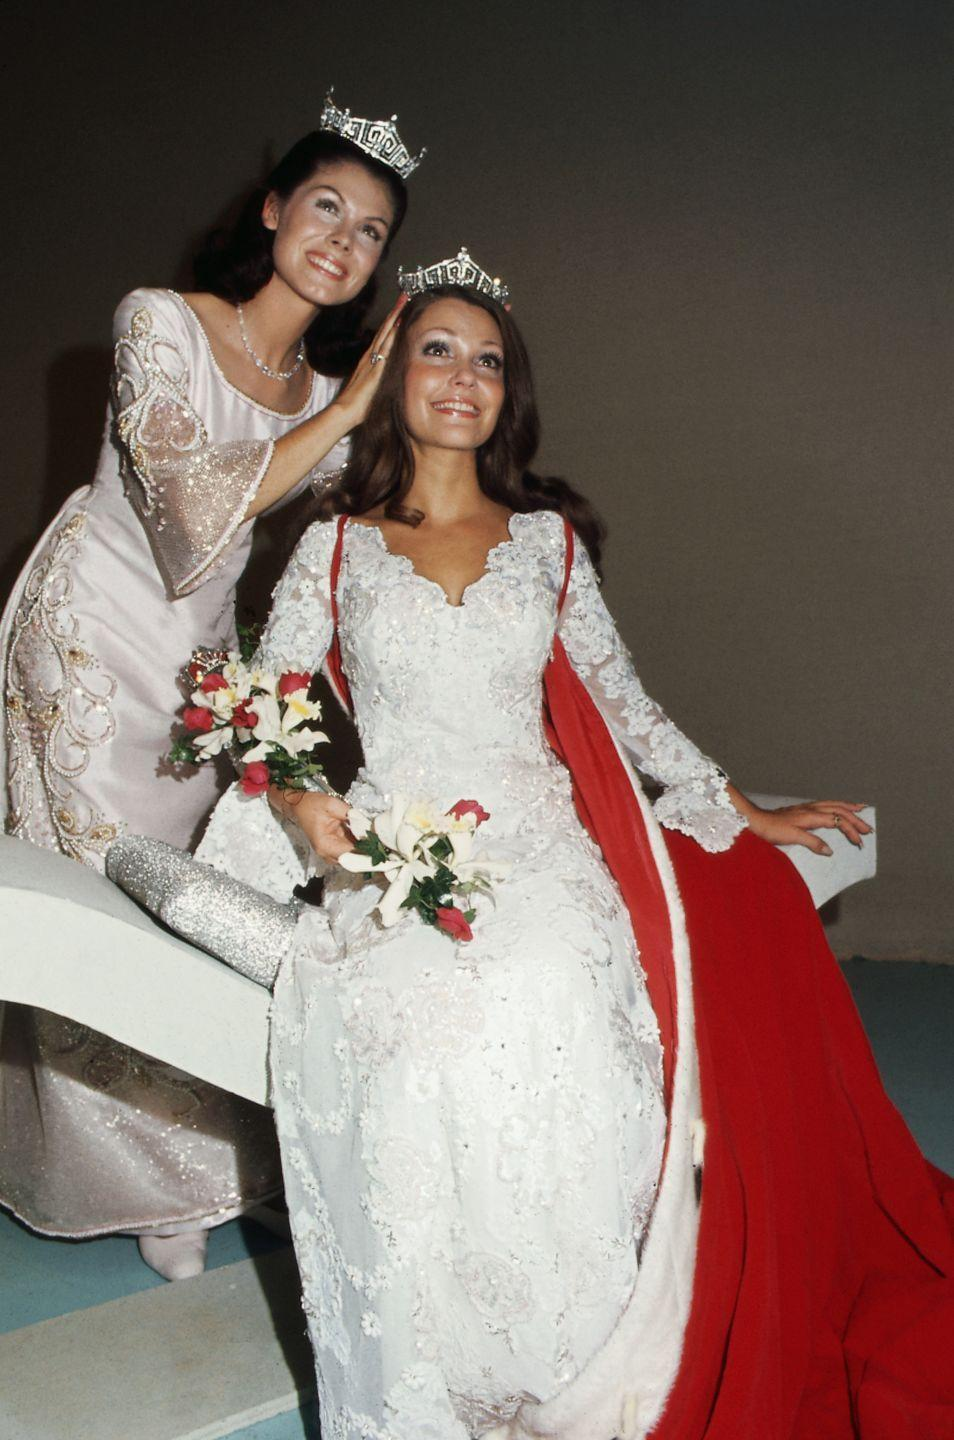 <p>Terry Meeuwsen from Wisconsin, pictured here being crowned, opted for a lace bell-sleeve dress for her evening gown. The flowing design perfectly embodied the style of the '70s. </p>